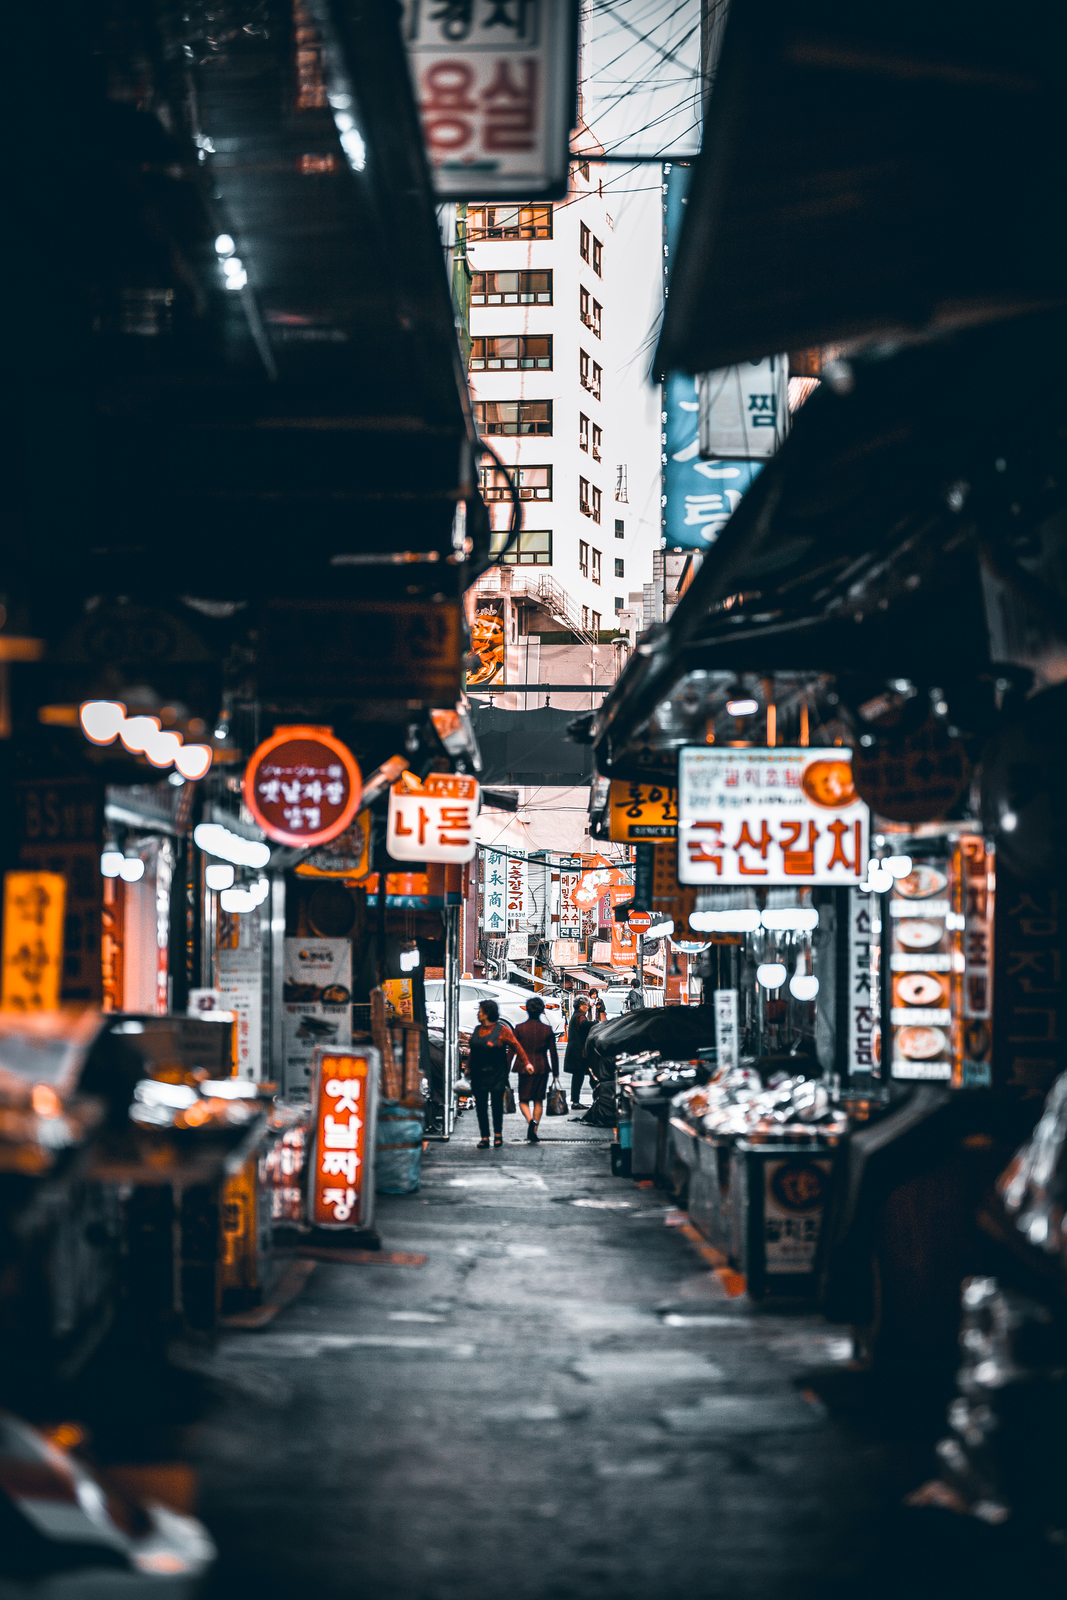 Namchang-dong, Seoul, South Korea, 2019